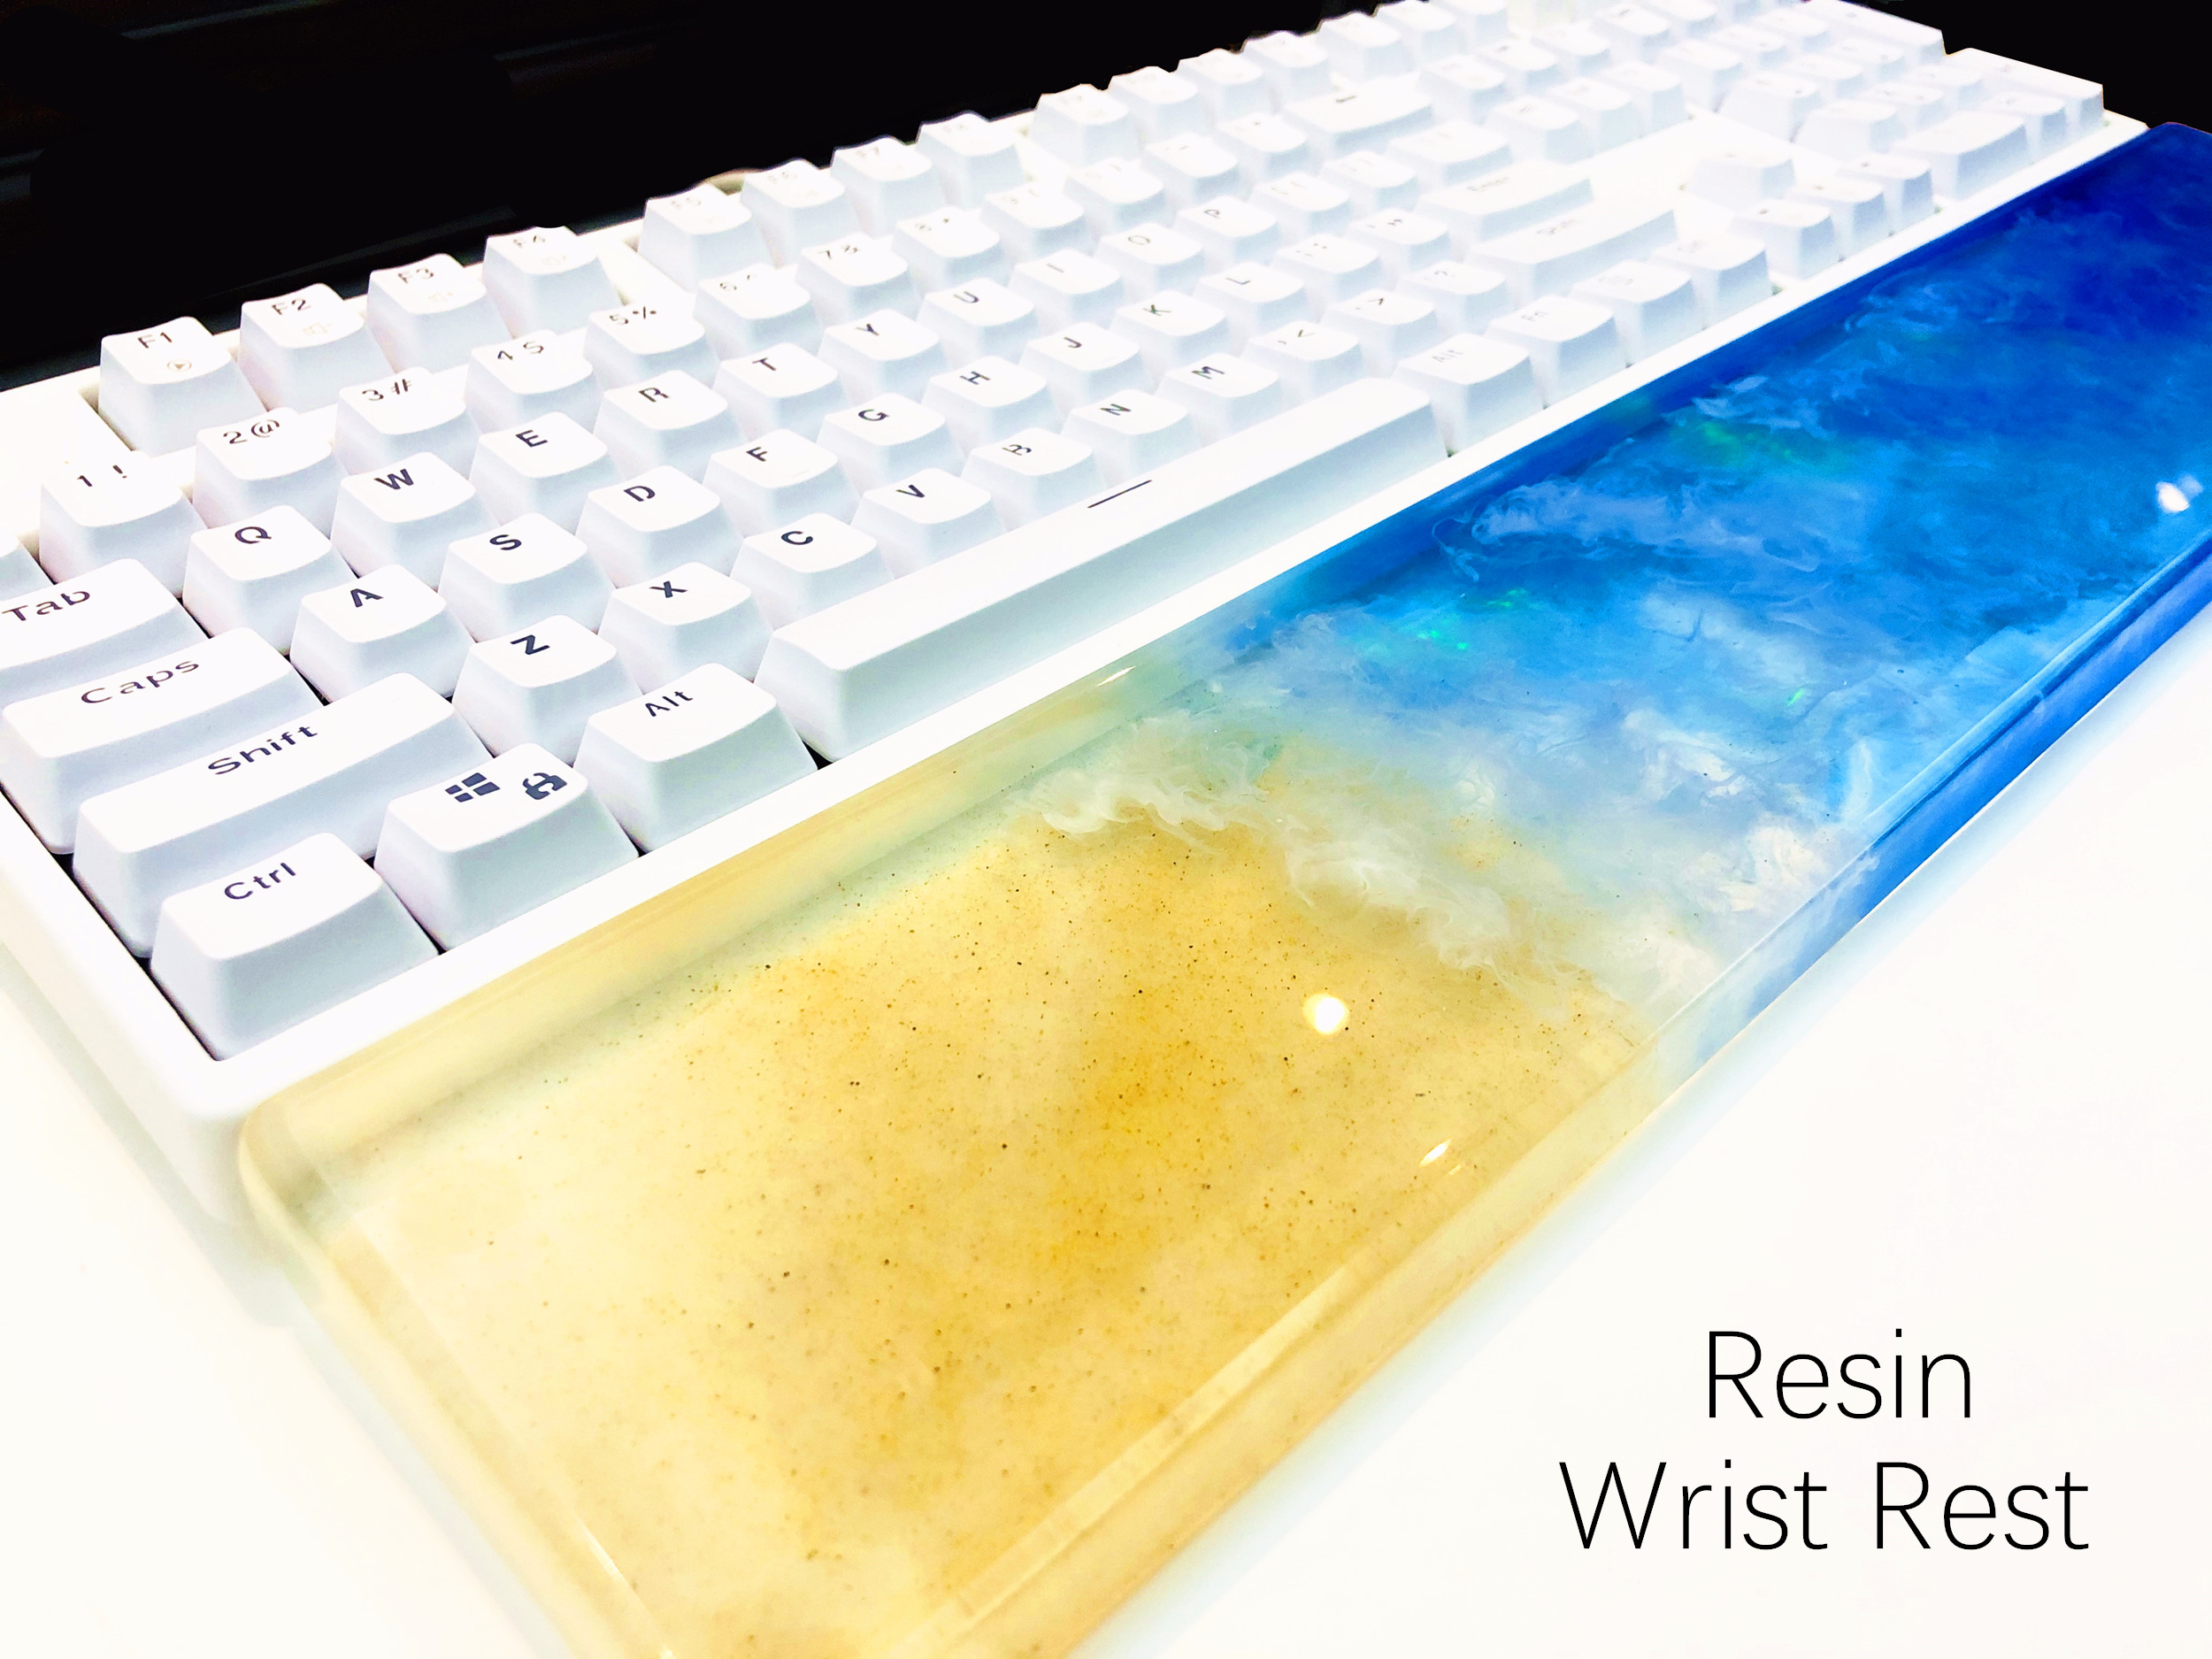 Hawaii Beach Resin Wrist Rest Handmade Transparent Resin Artisan Wrist Pad Ergonomic For 87 104 Keys Mechanical Gaming Keyboard image